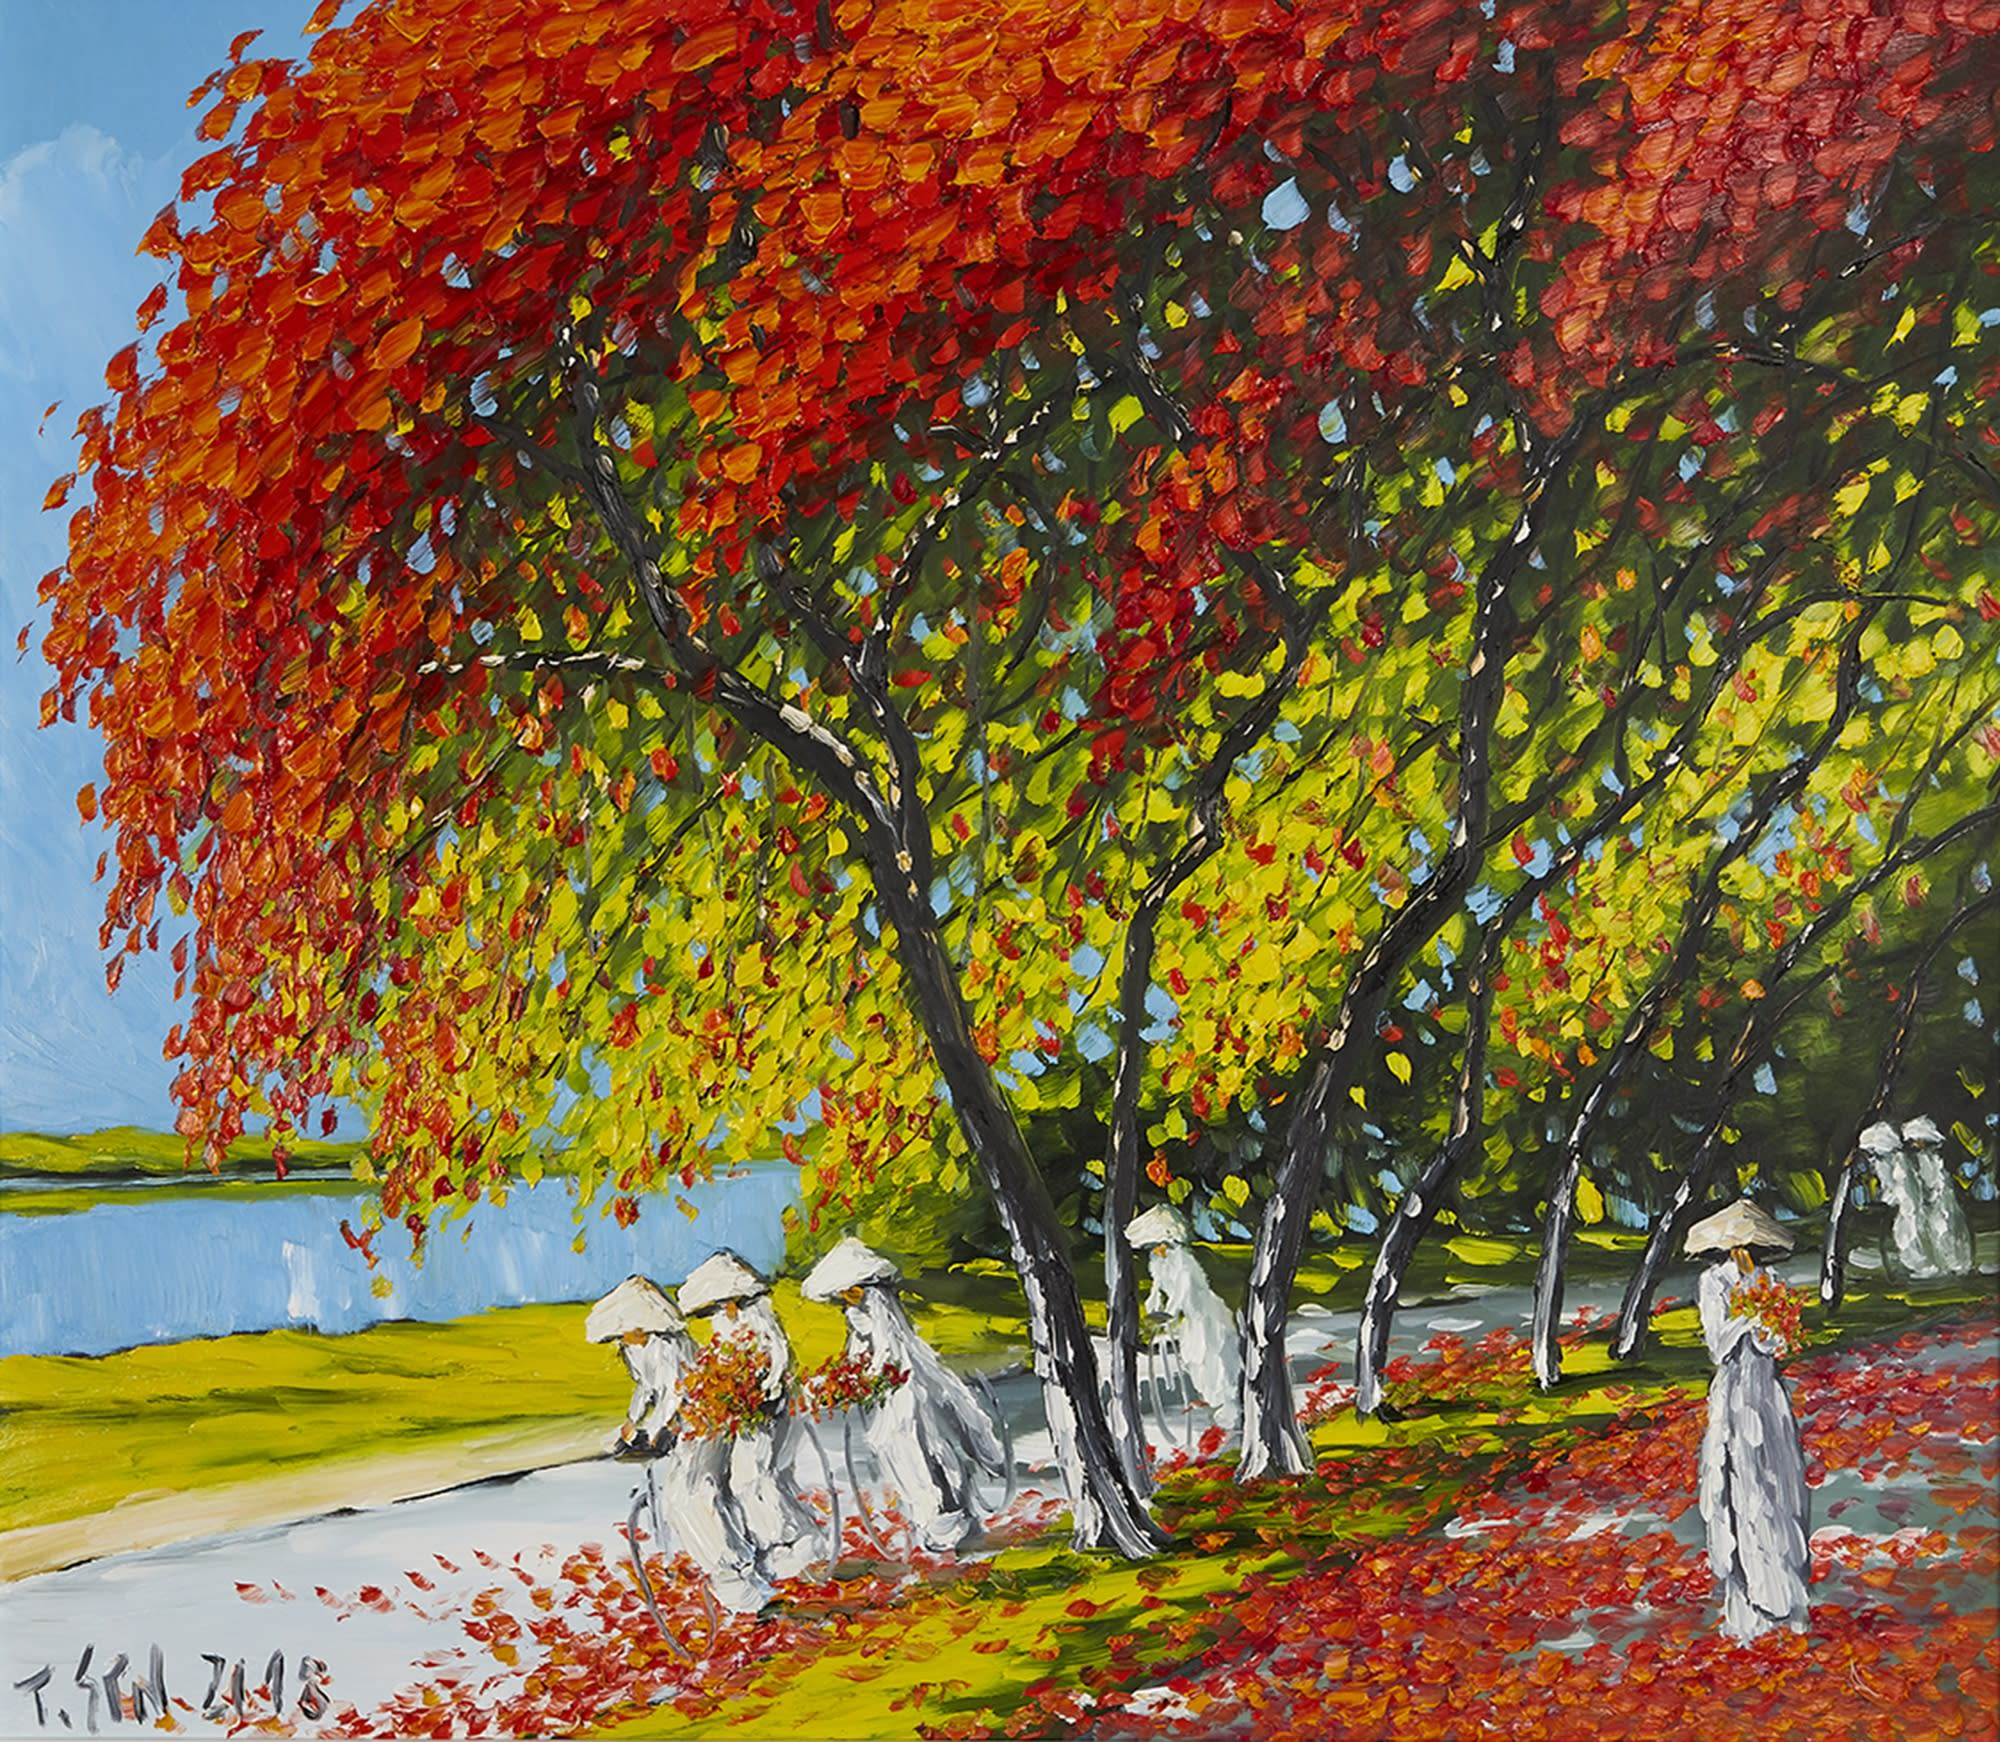 Expressonist painting by Le Thanh Son